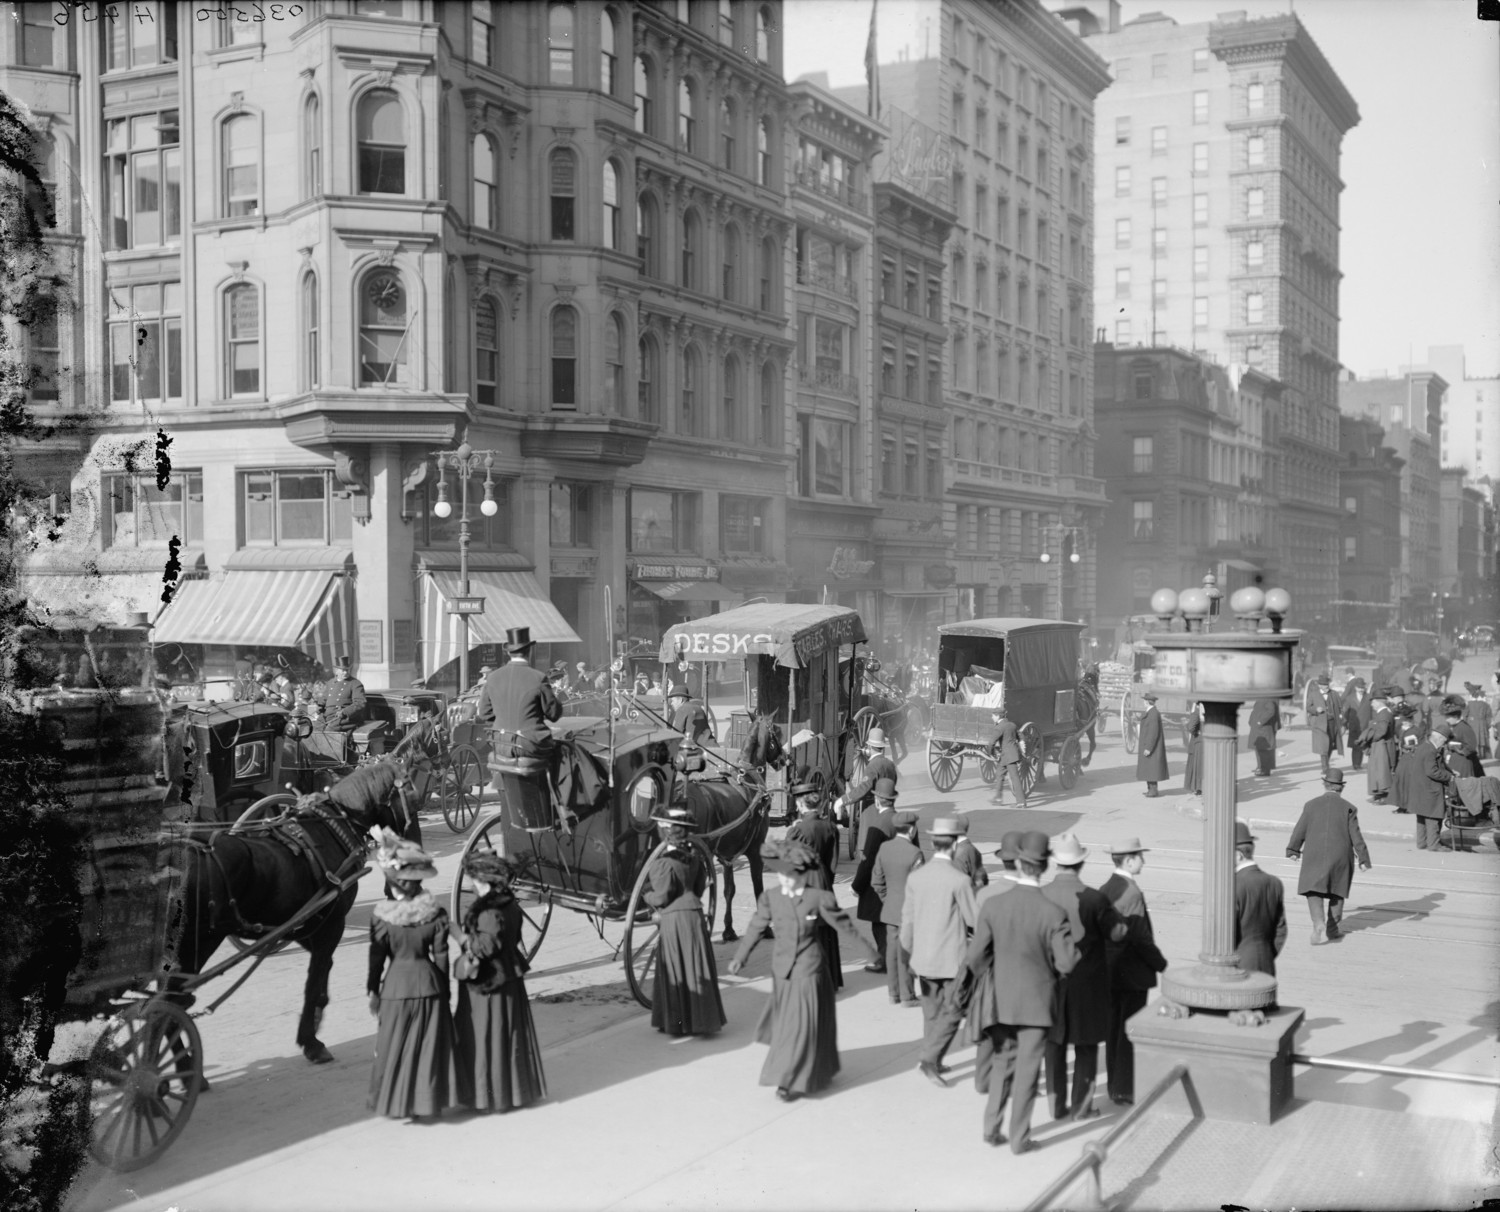 Fifth Avenue & 42nd Street c. 1903 – Crowded Street On A Cold Sunny Day